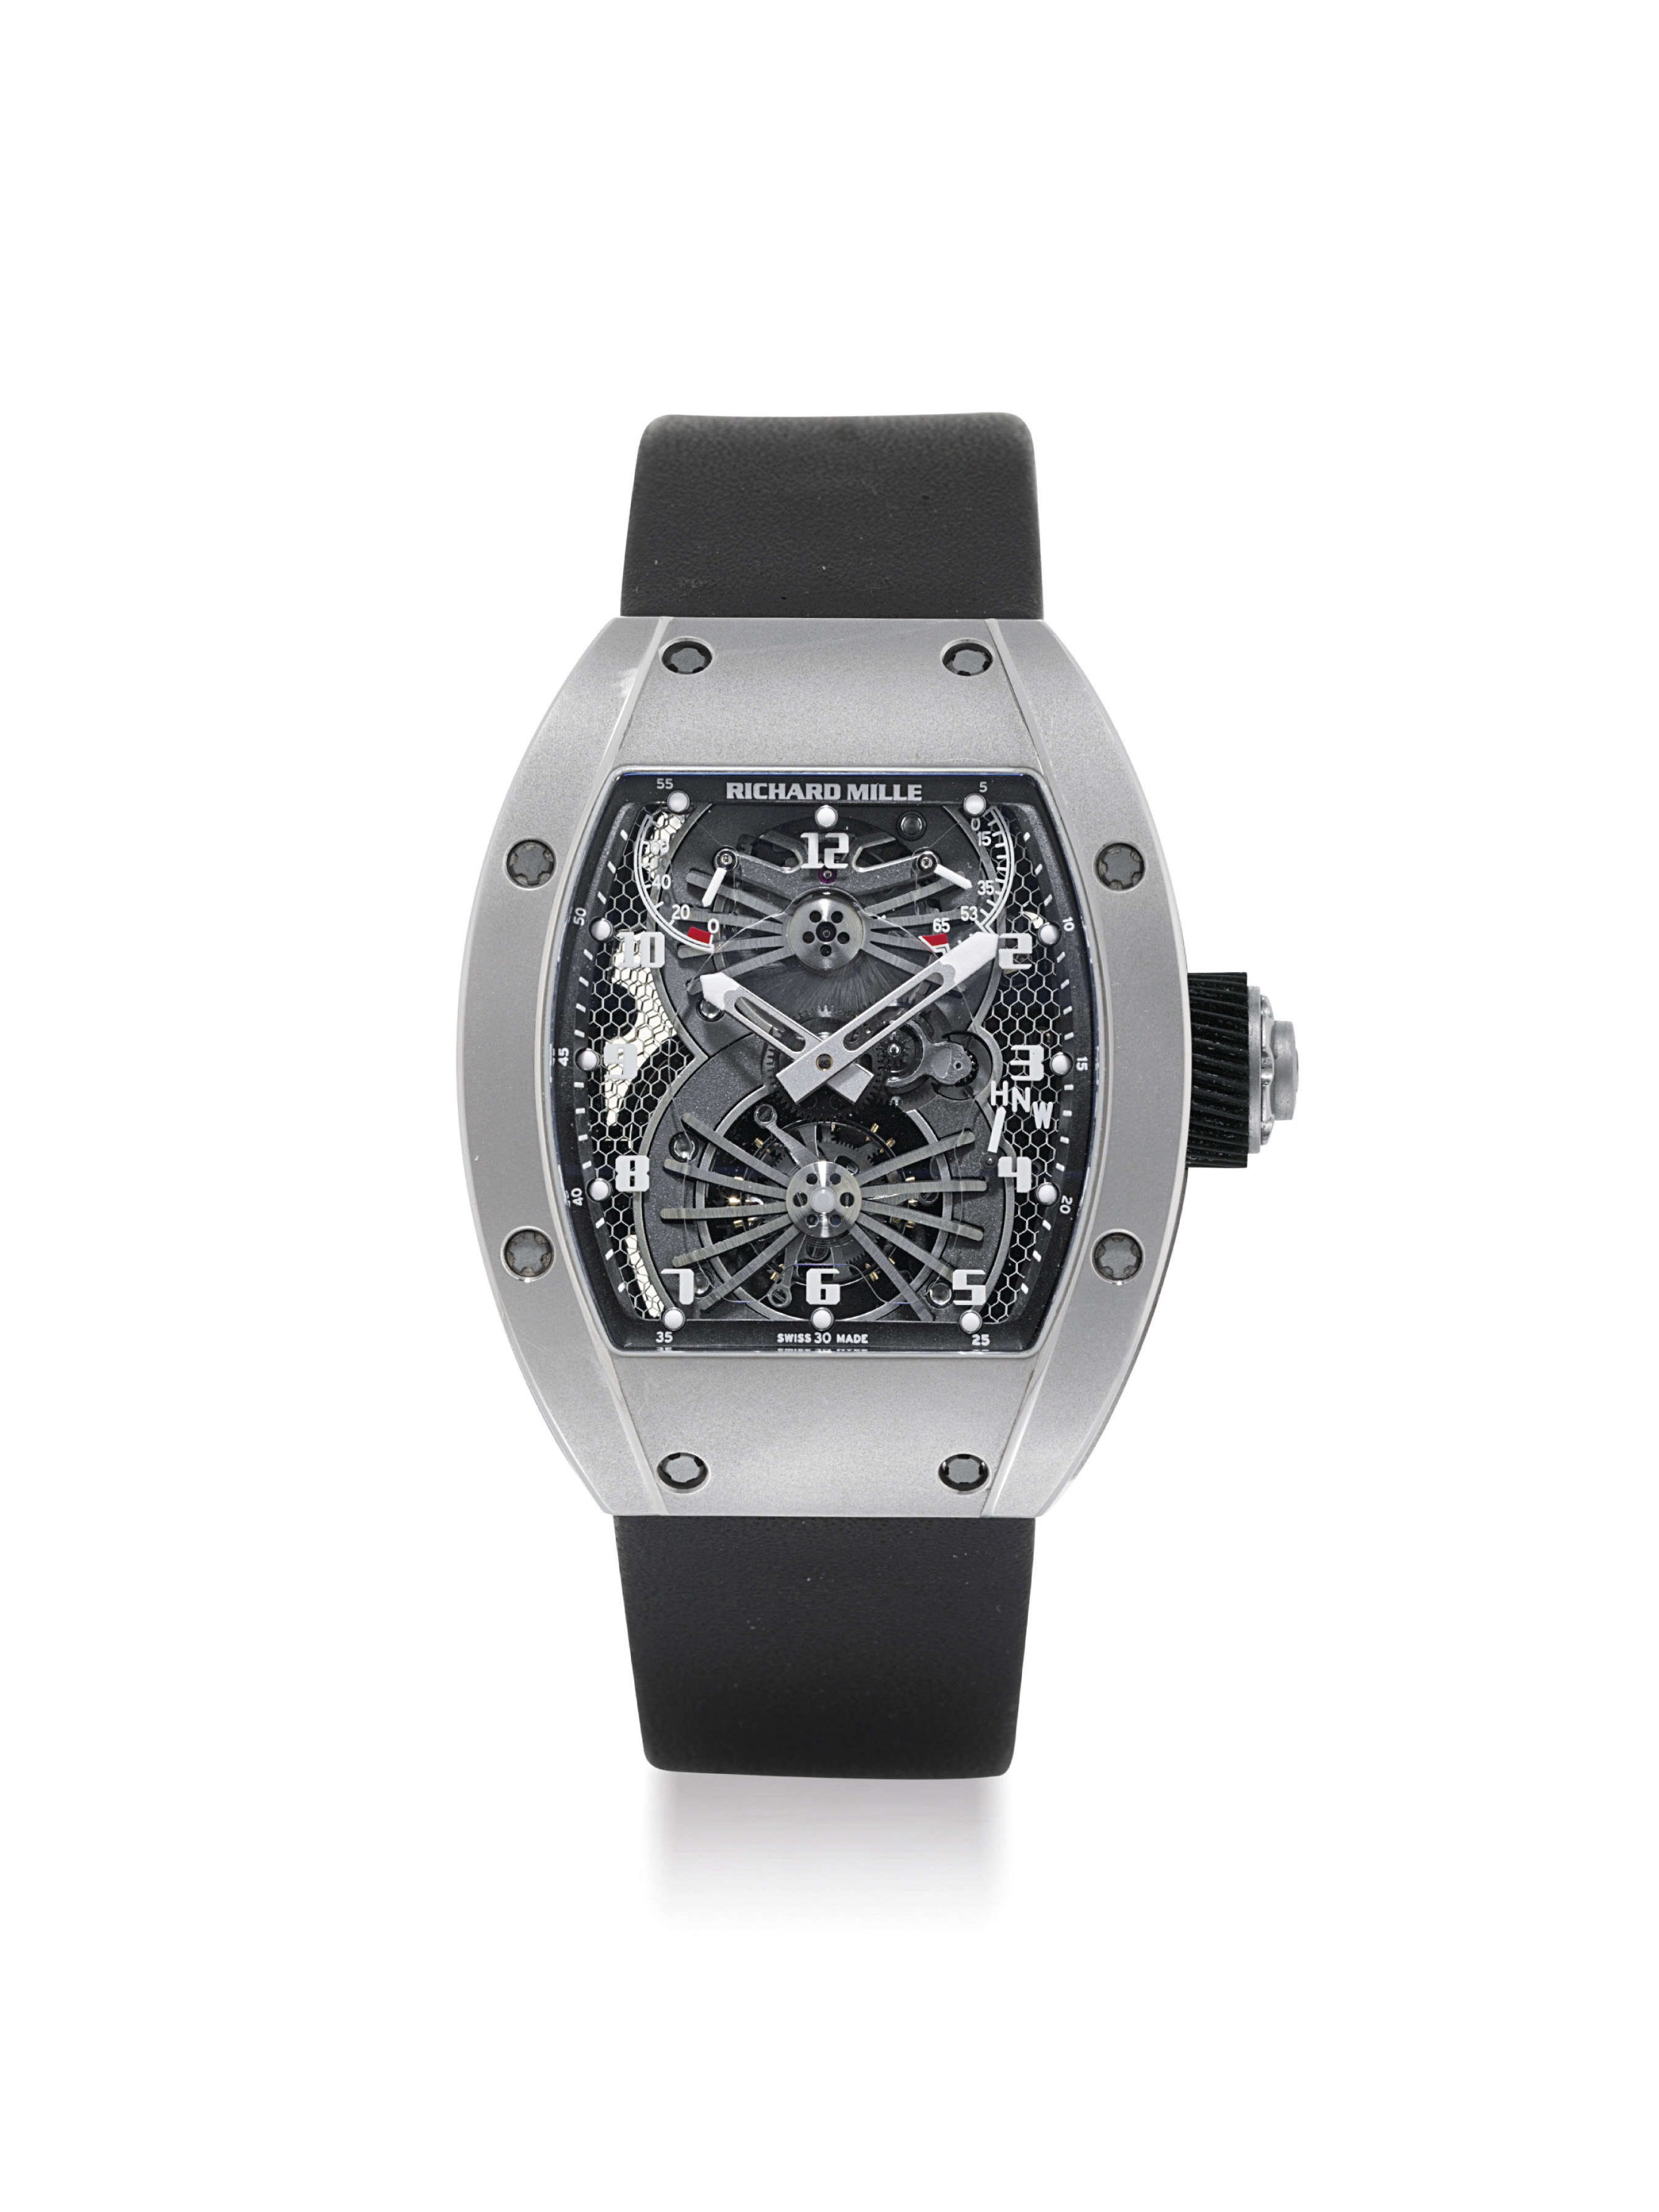 RICHARD MILLE. A FINE AND VERY RARE 18K WHITE GOLD TOURBILLON WRISTWATCH WITH POWER RESERVE AND TORQUE INDICATOR